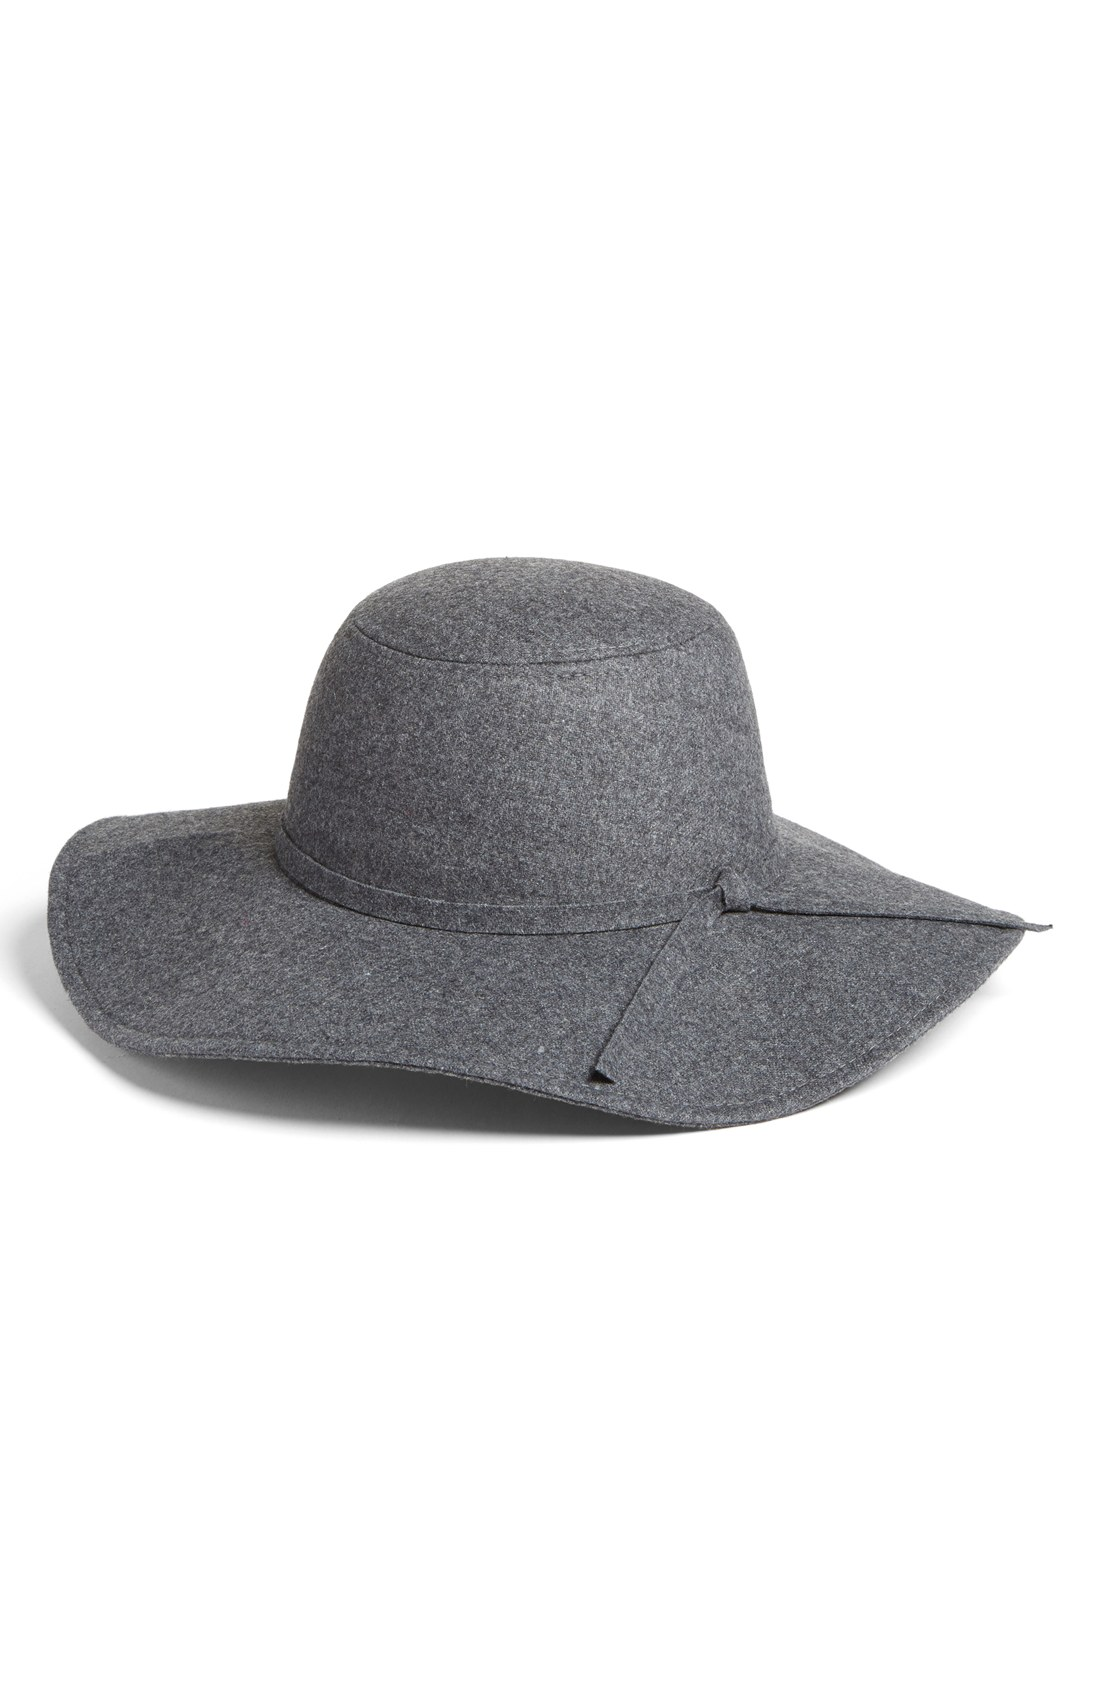 Find great deals on eBay for felt floppy fedora hat. Shop with confidence.